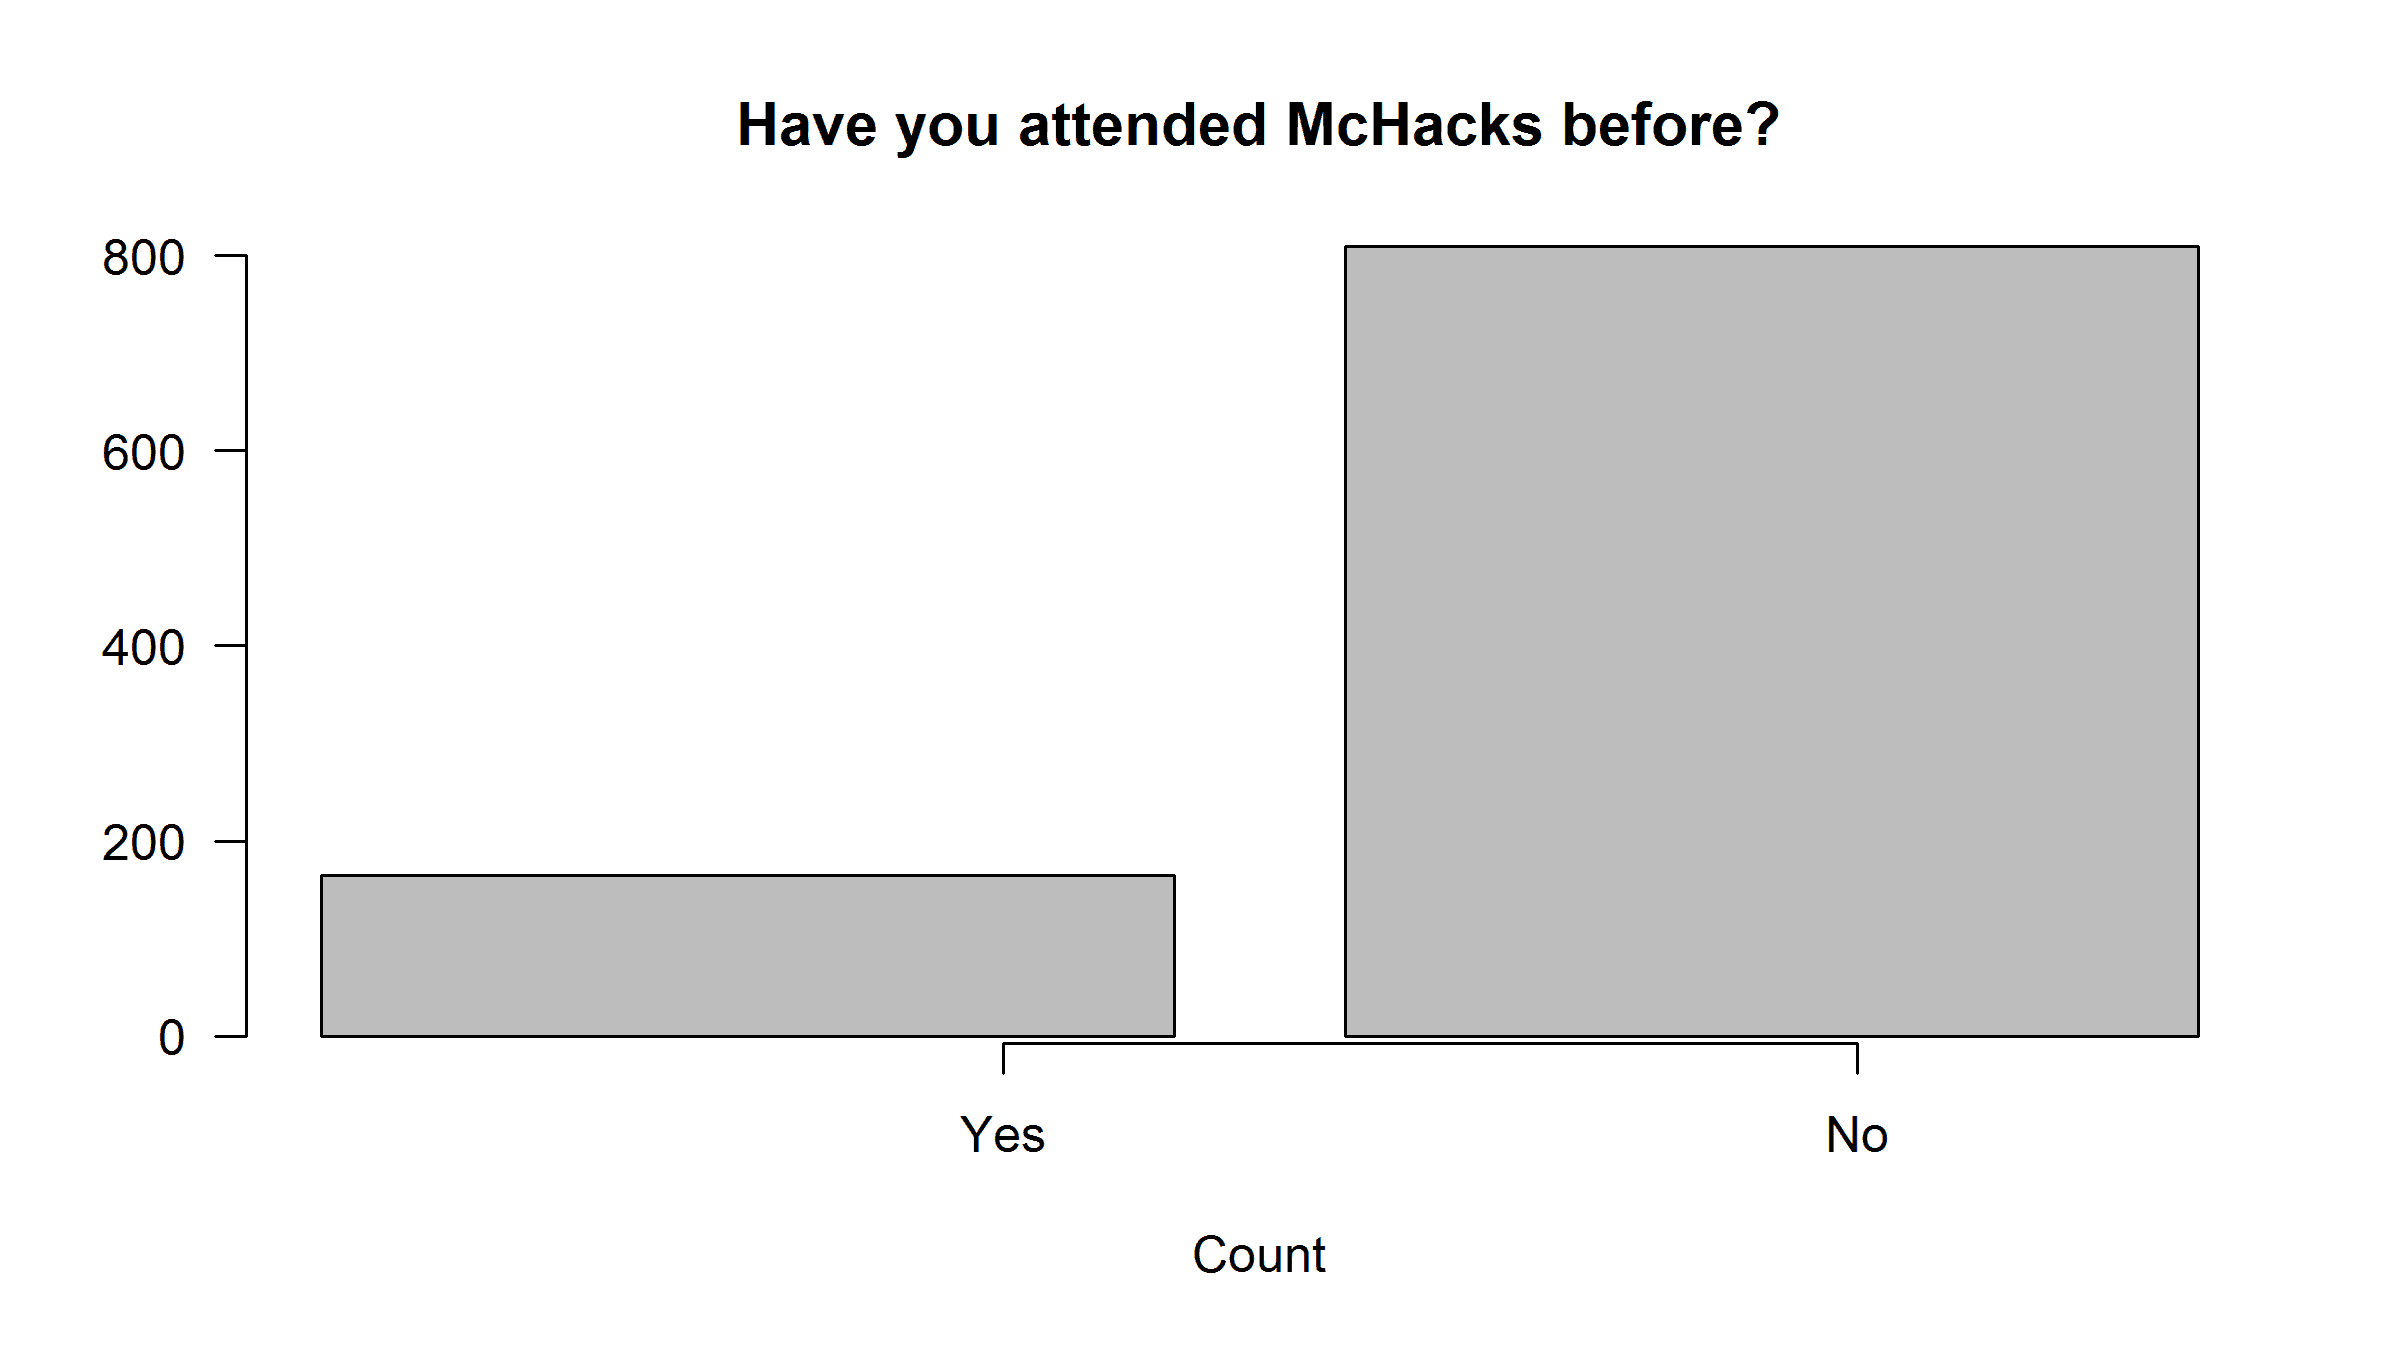 Breakdown of previous McHacks attendance